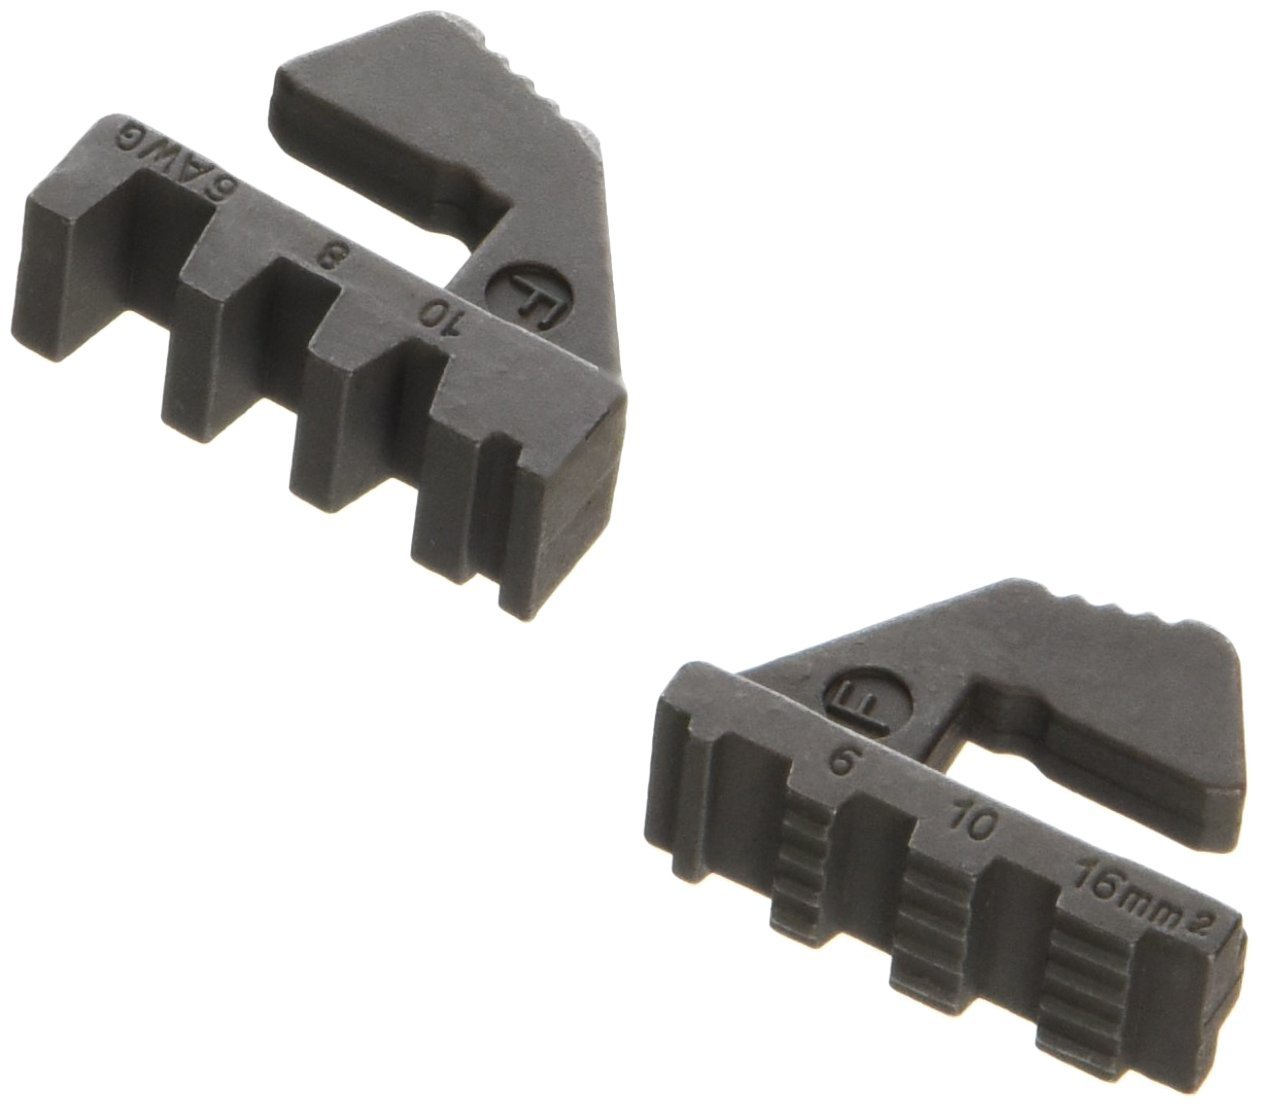 Sonic 81306 Jaw for Cord-End Terminal